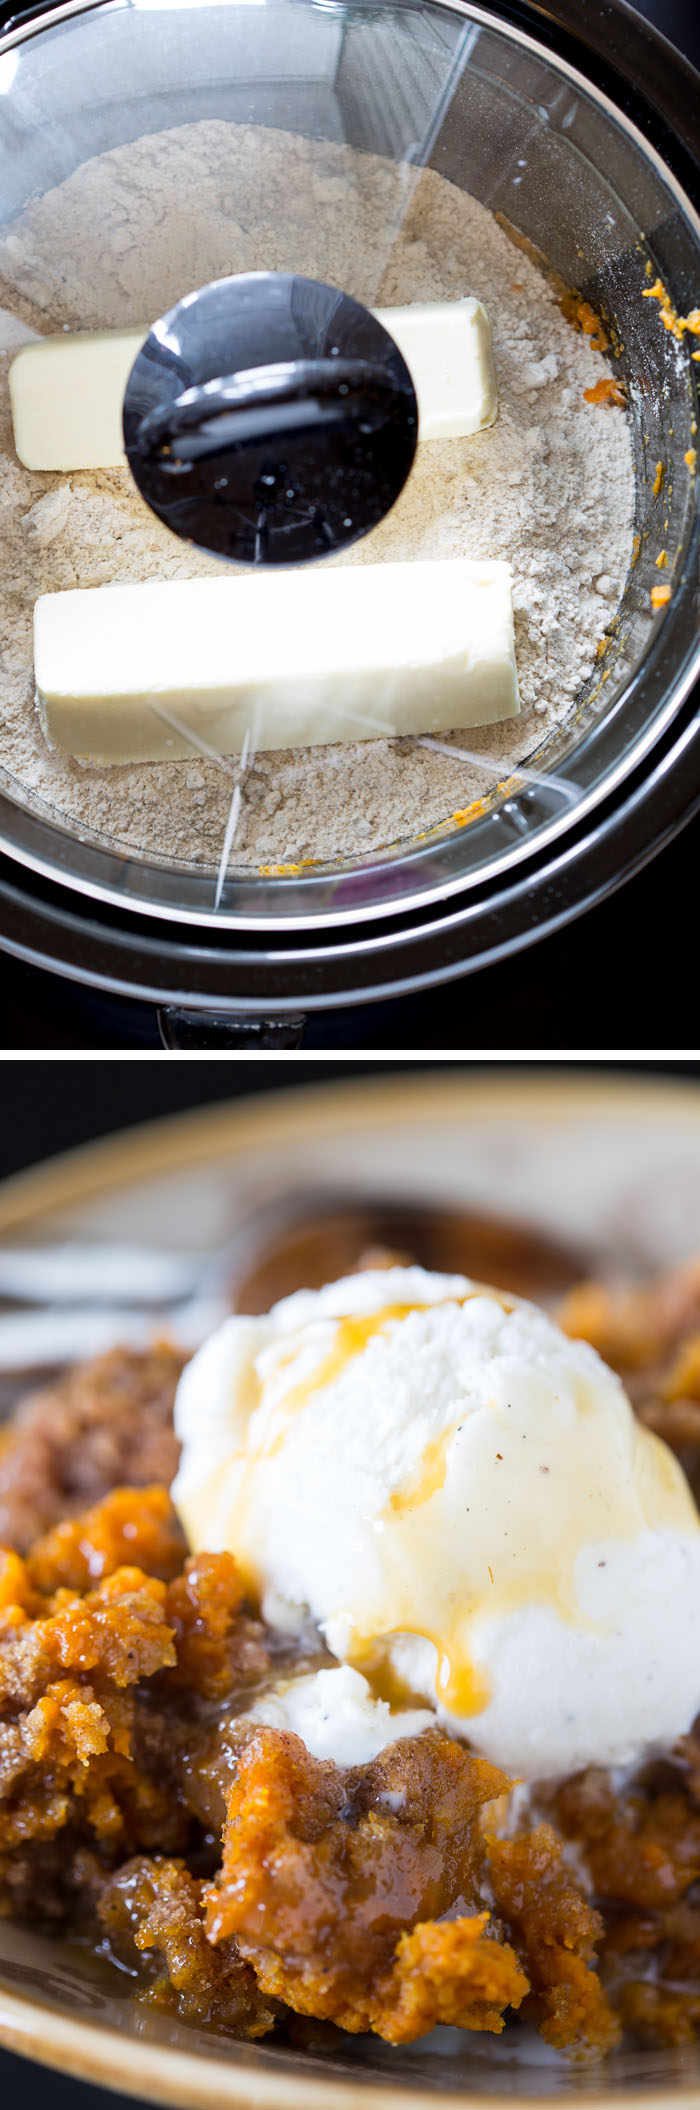 3-Ingredient Slow-Cooker Pumpkin Cake